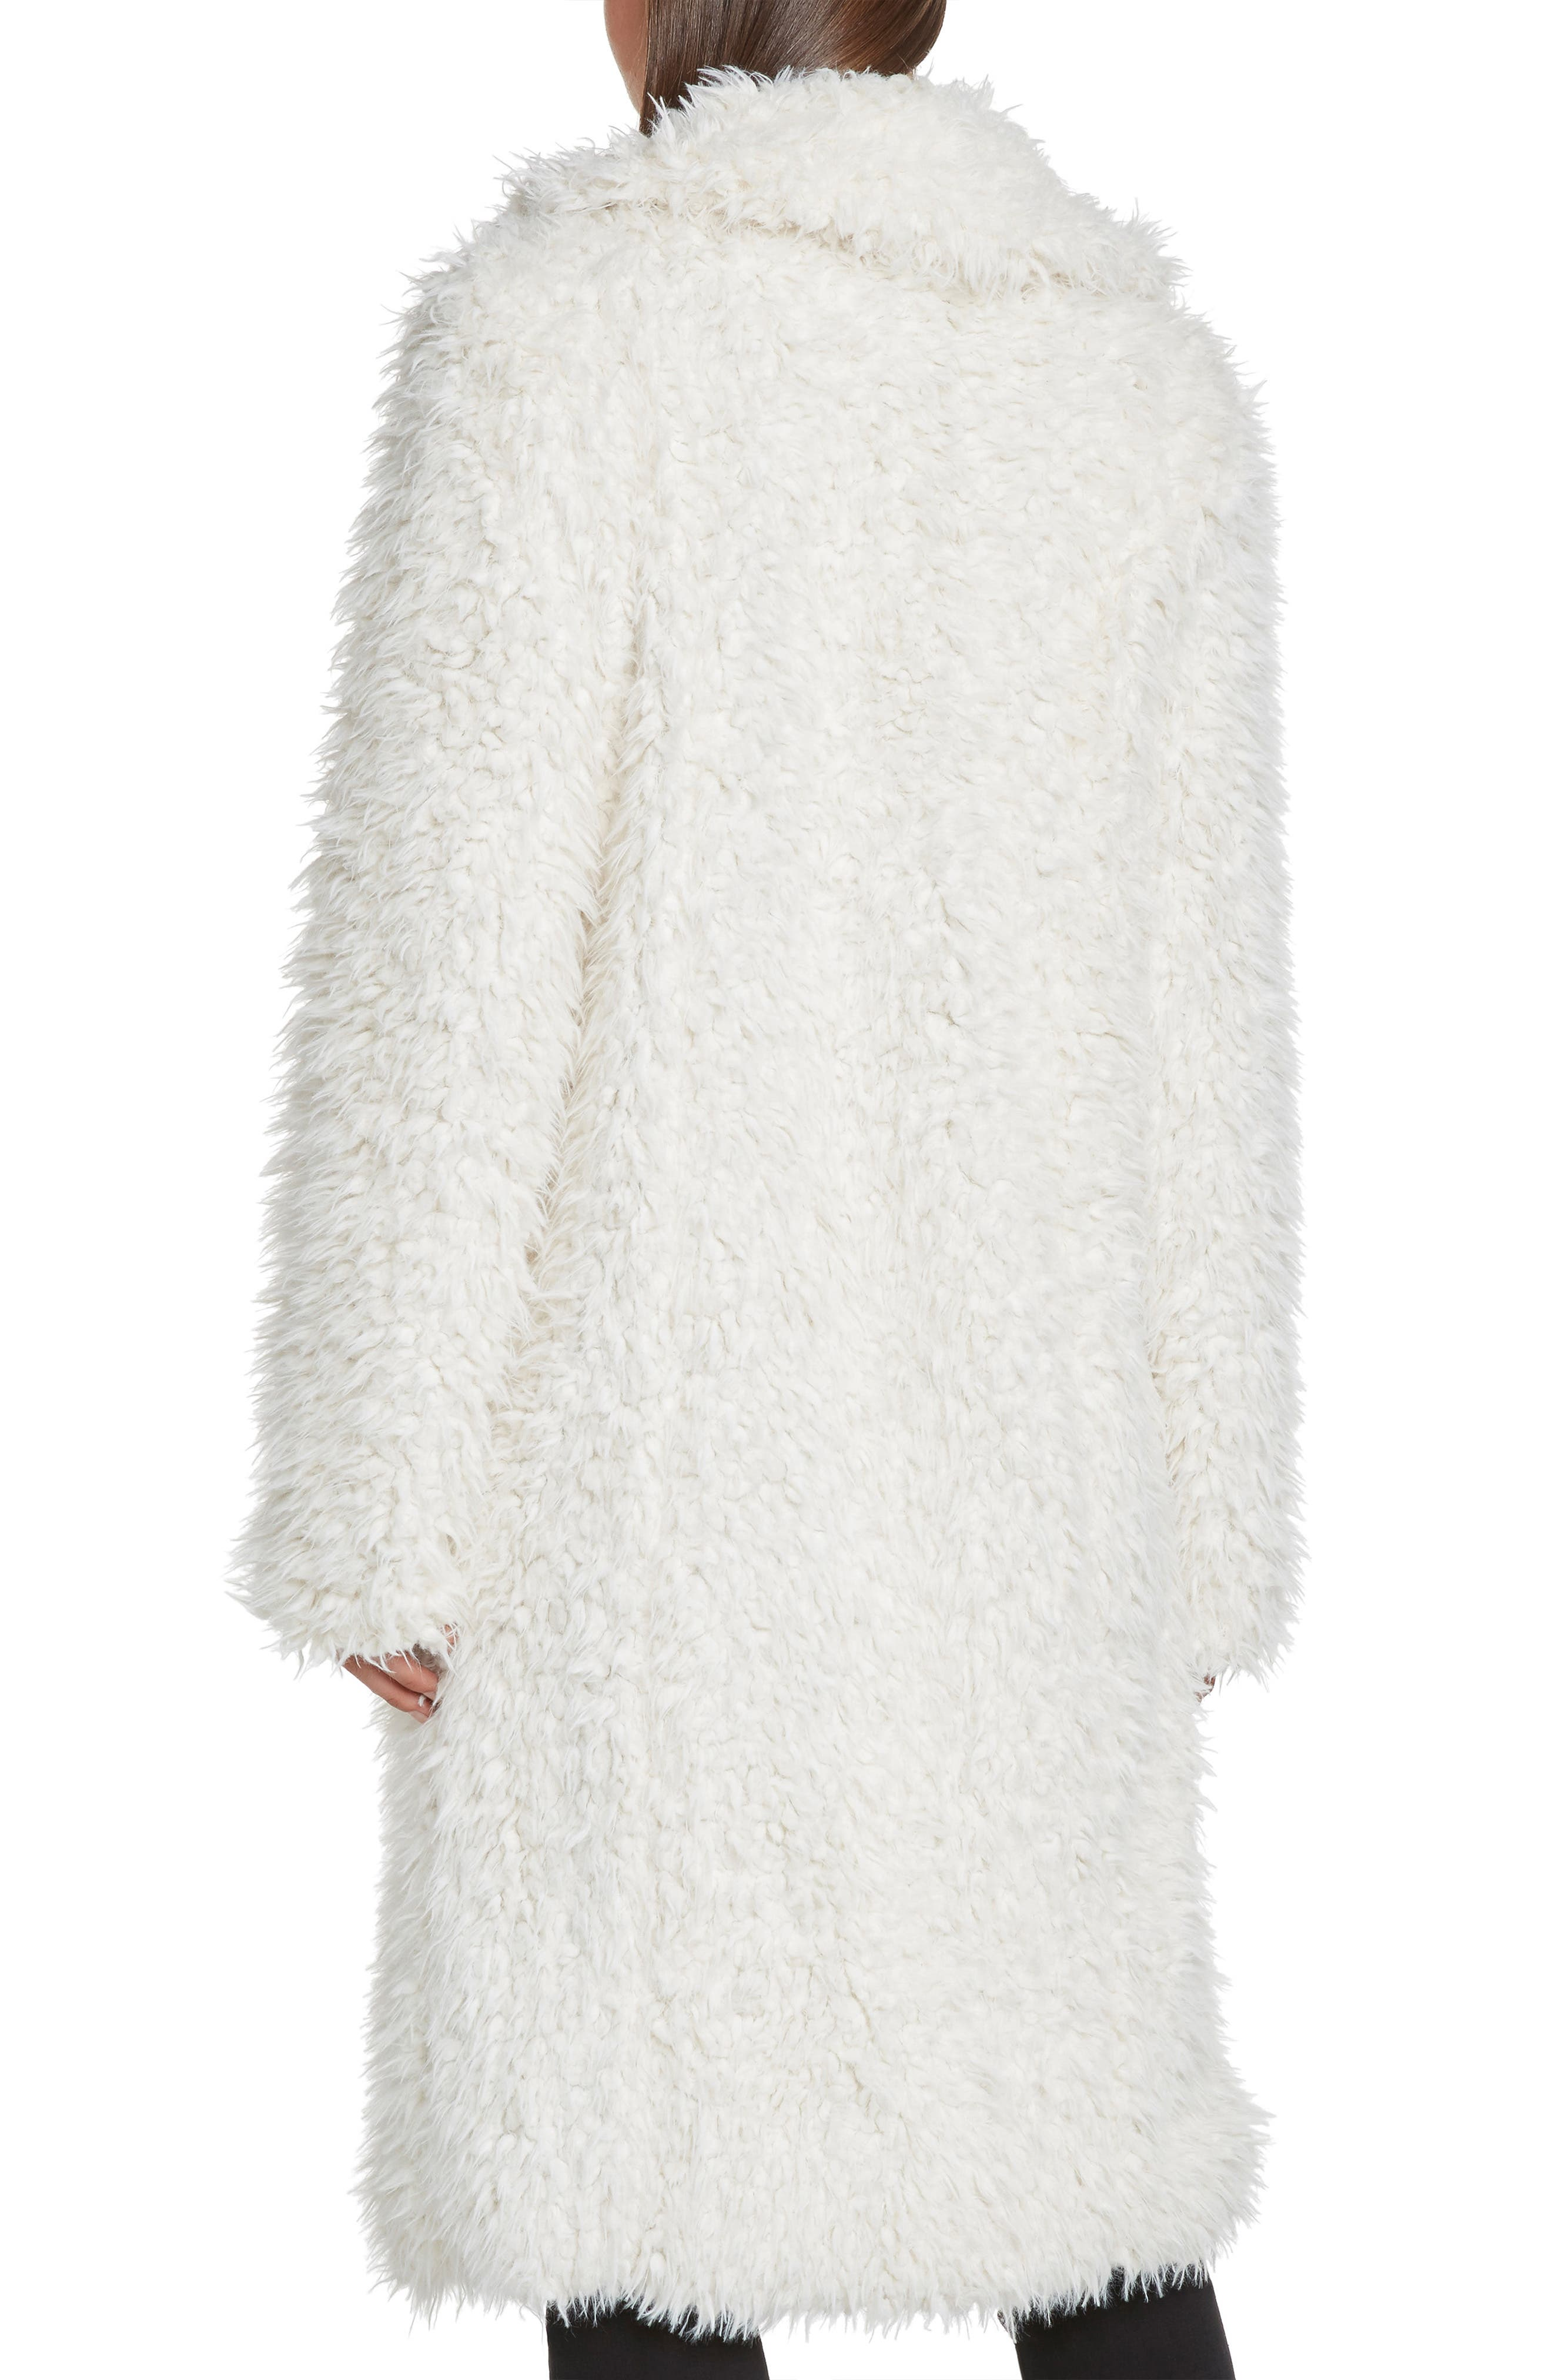 WILLOW & CLAY,                             Faux Fur Jacket,                             Alternate thumbnail 3, color,                             900